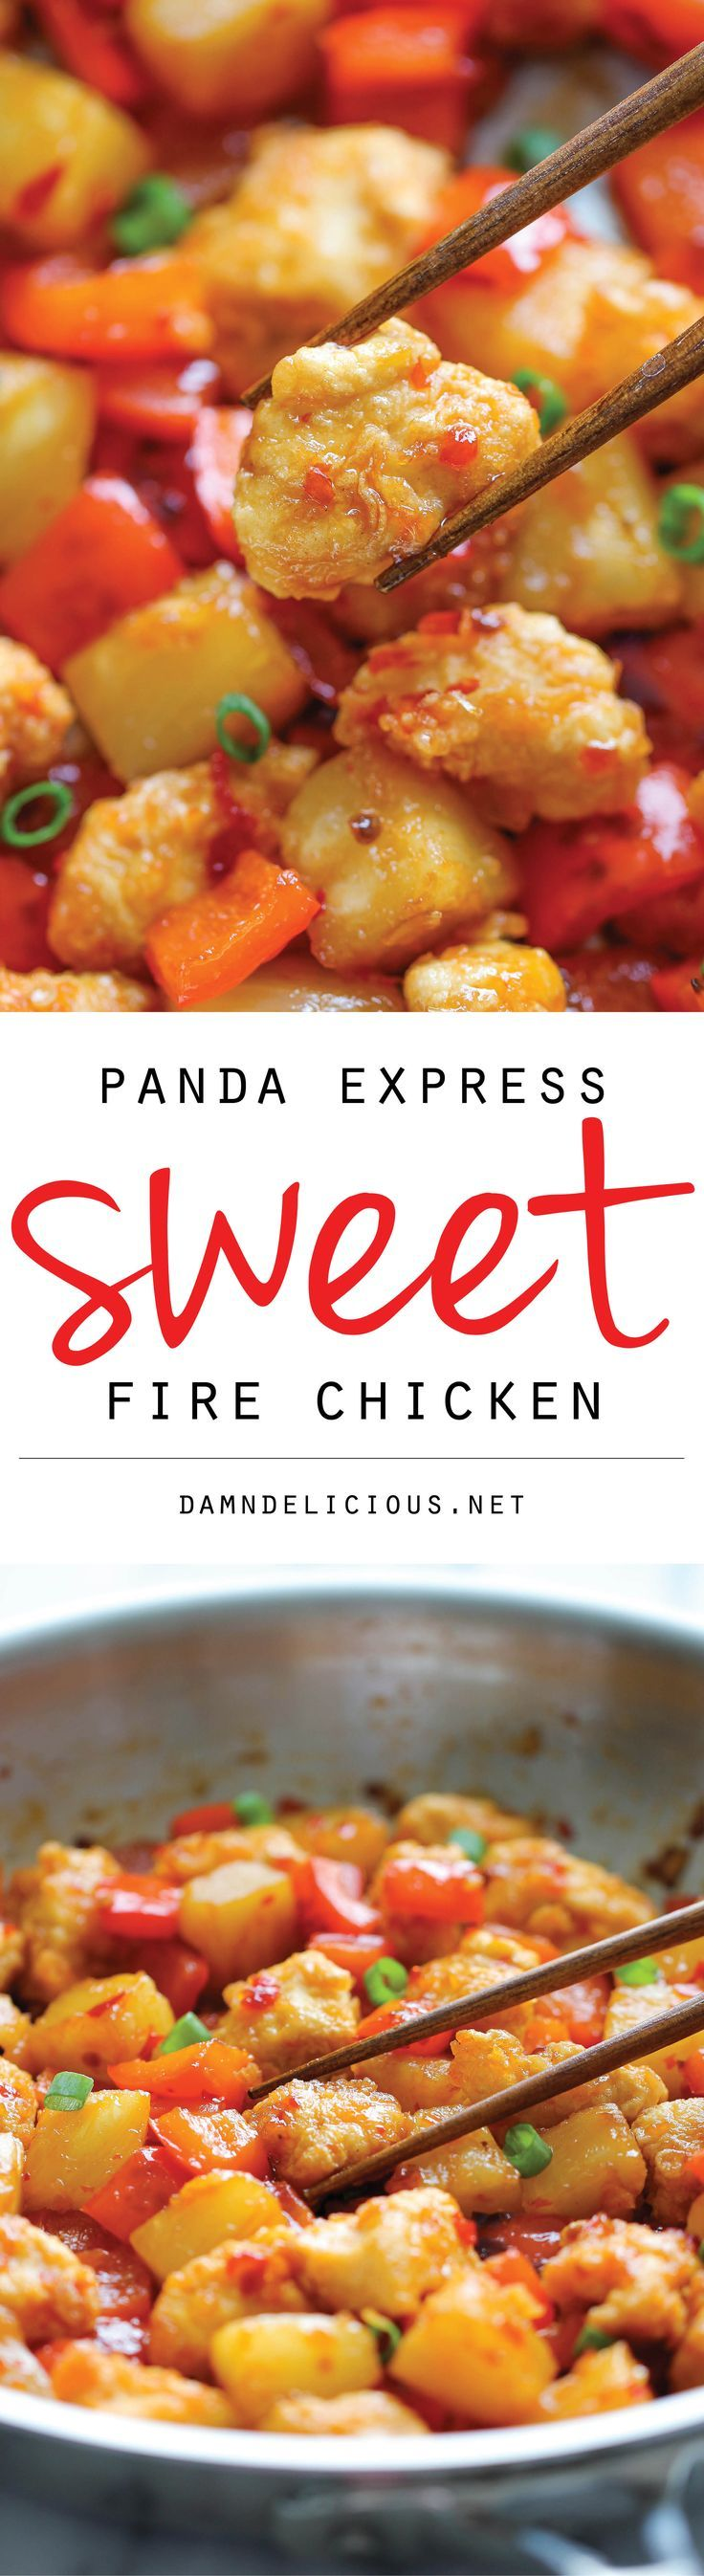 Panda Express Sweet Fire Chicken Copycat - An easy homemade version that tastes so much better (and healthier) than take-out! | https://lomejordelaweb.es/